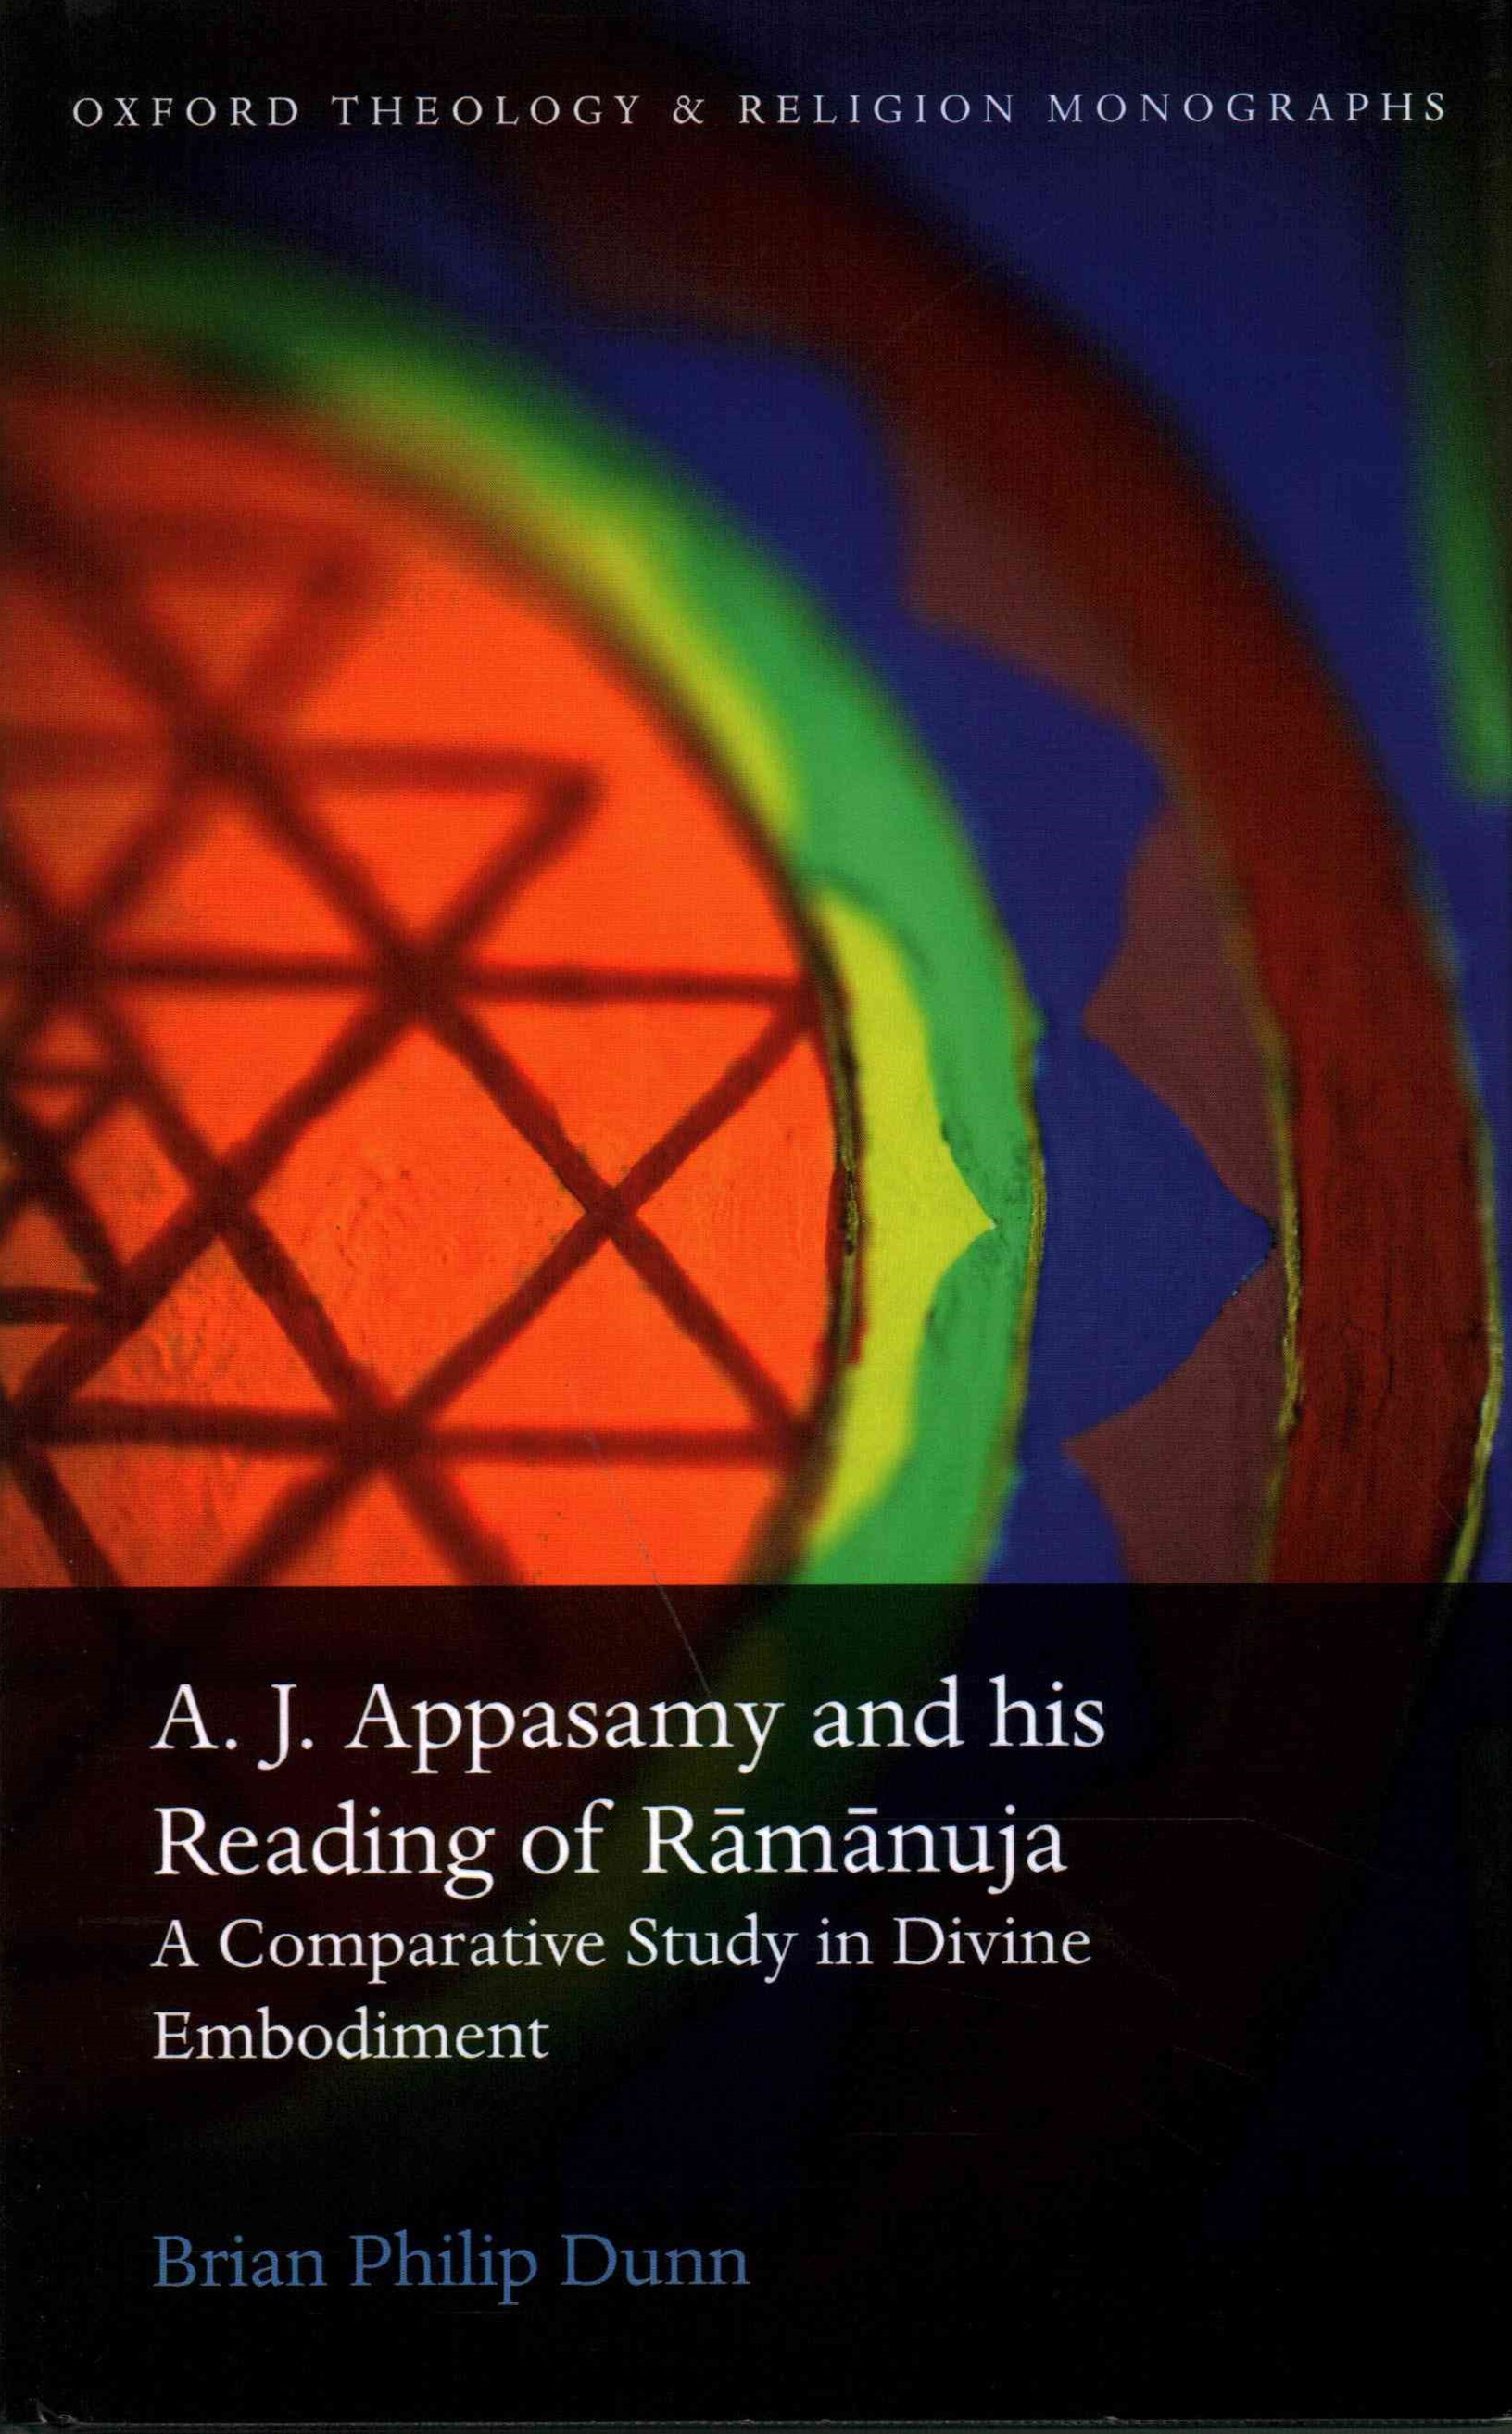 A. J. Appasamy and his Reading of Ramanuja